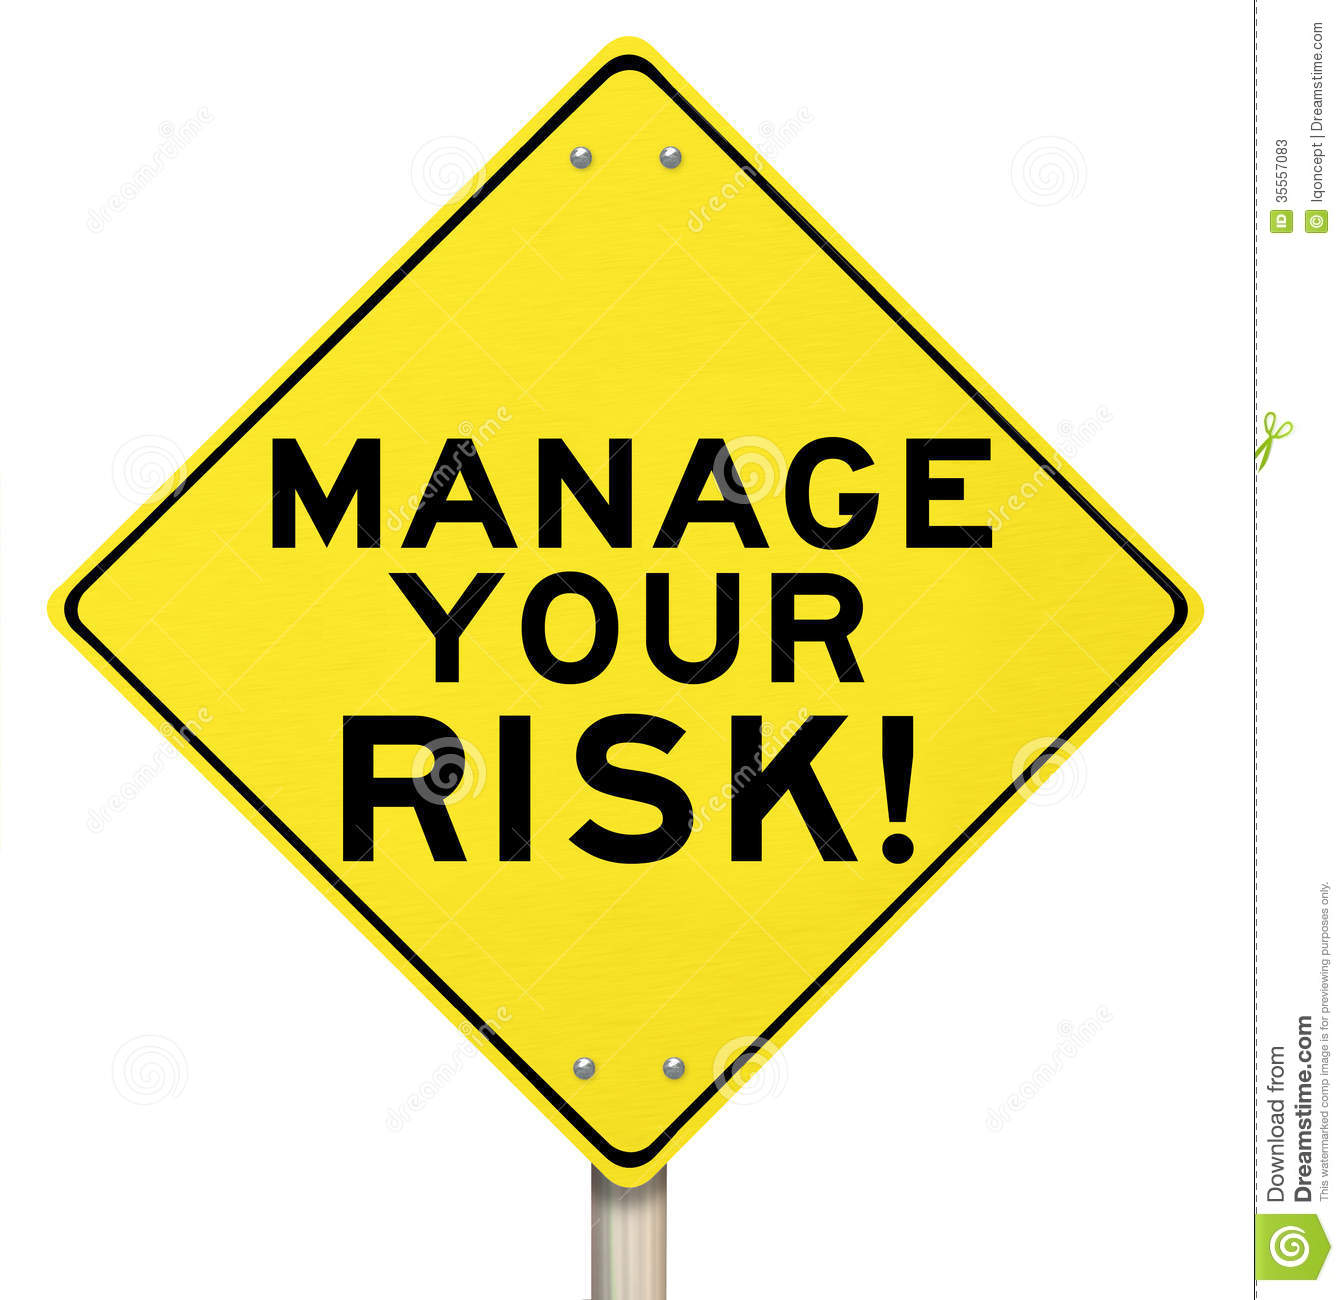 Manage Your Opportunities Be: Manage Your Risk Management Yellow Warning Sign Stock